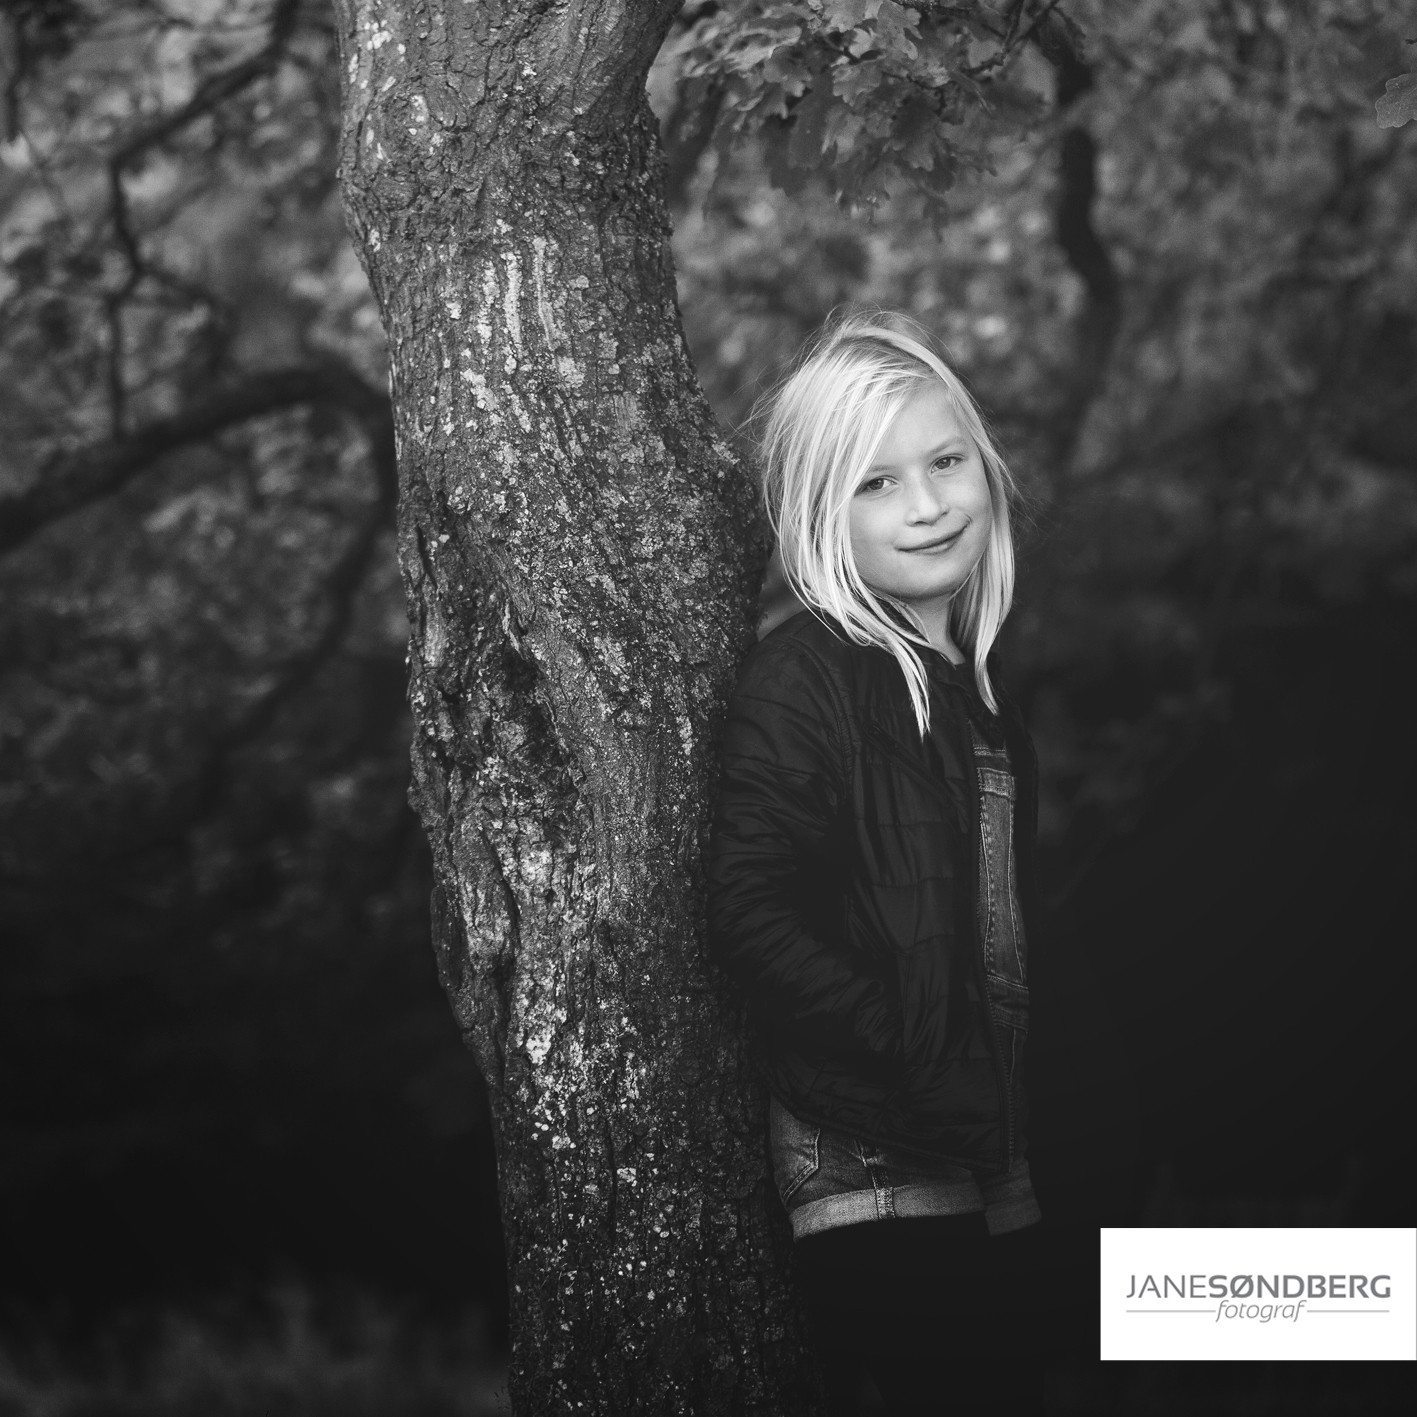 Barn/teen Photoshoot i det fri - Skanderborg